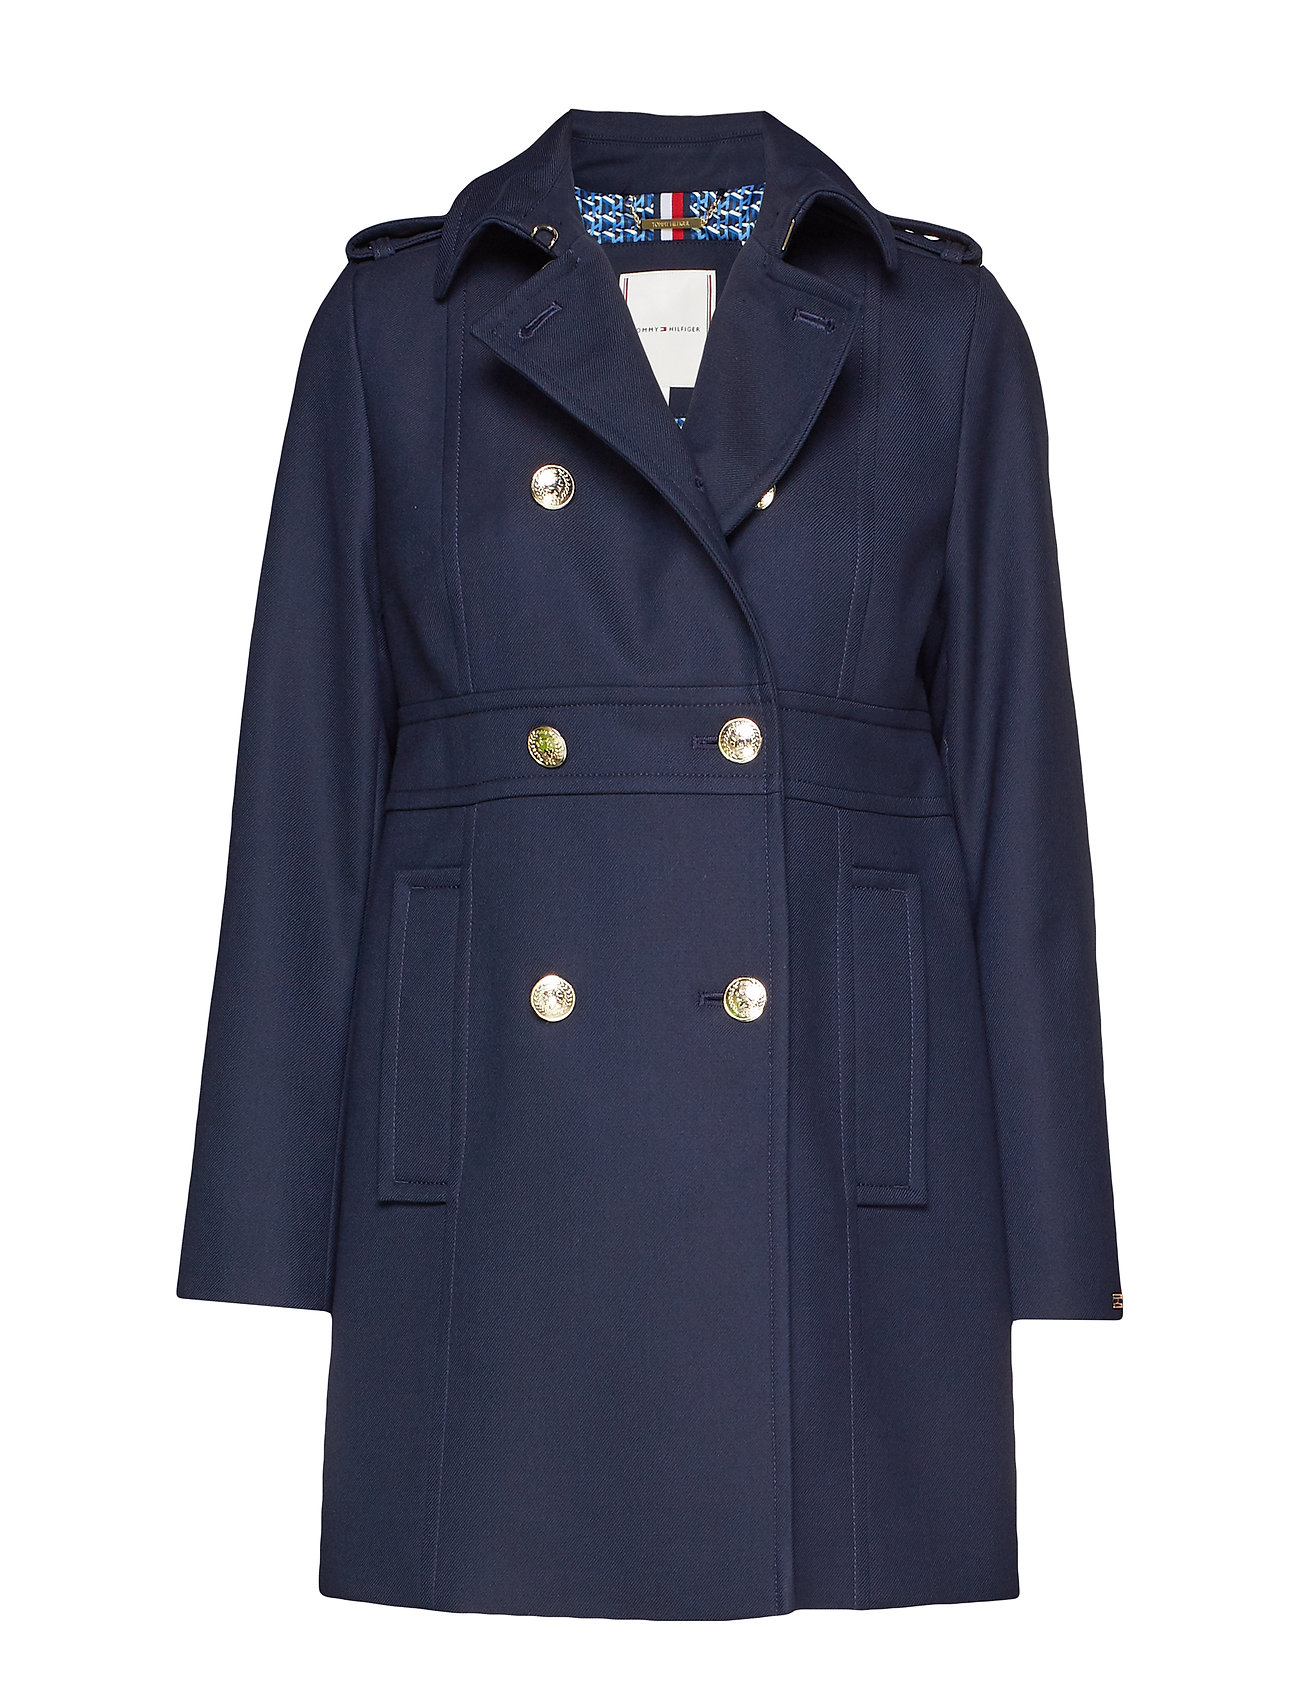 Tommy Hilfiger MADISON COAT - SKY CAPTAIN